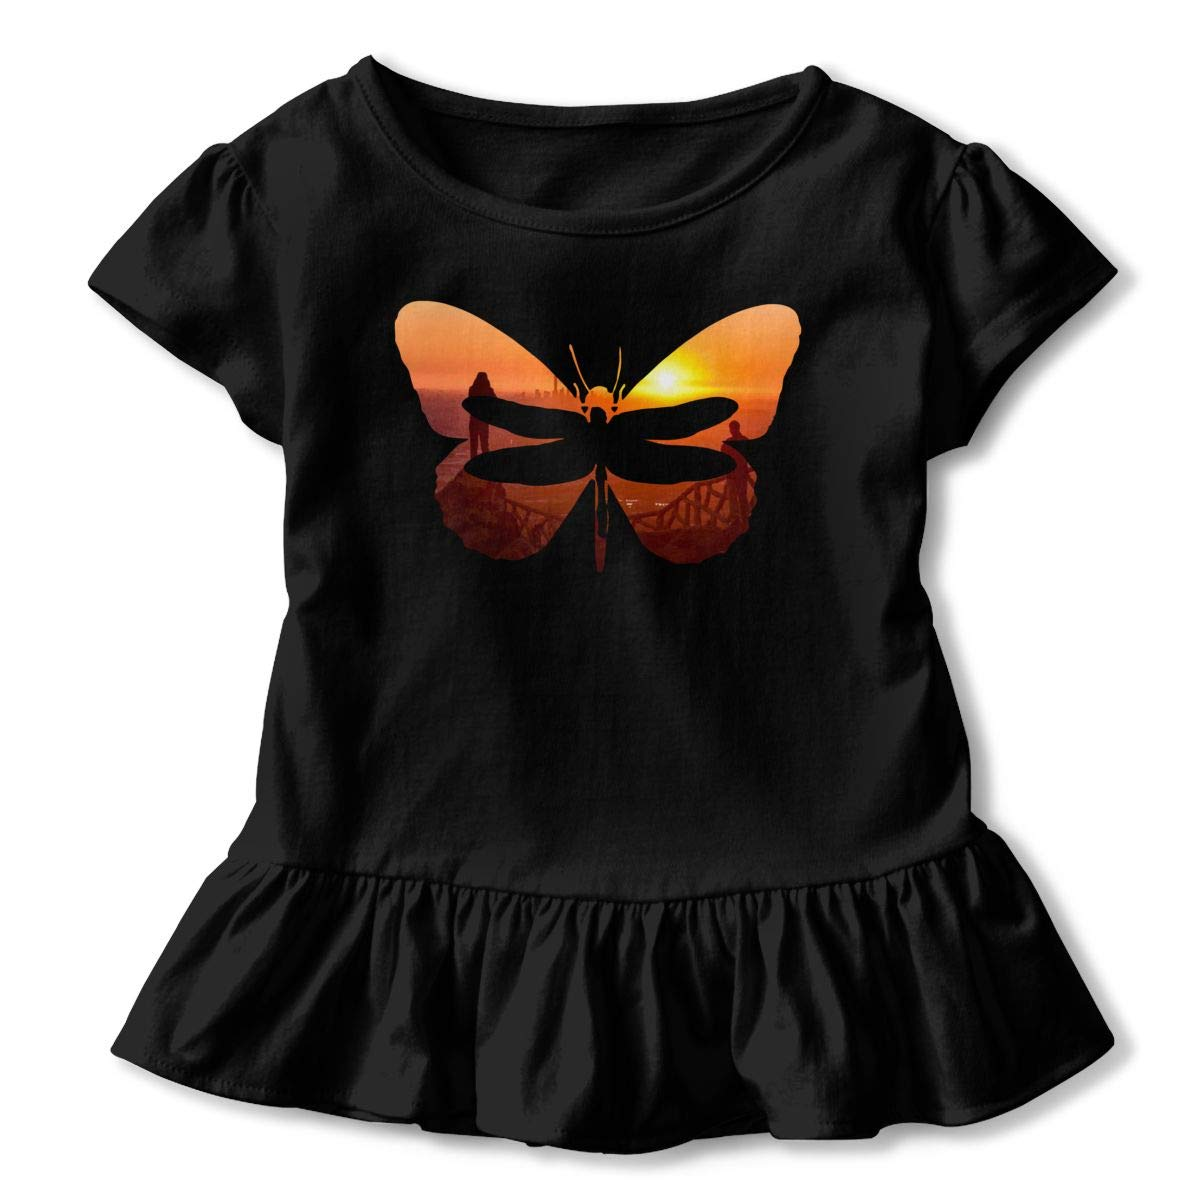 CZnuen Dragonfly Butterfly Sunrise 2-6T Baby Girls Cotton Jersey Short Sleeve Ruffle Tee